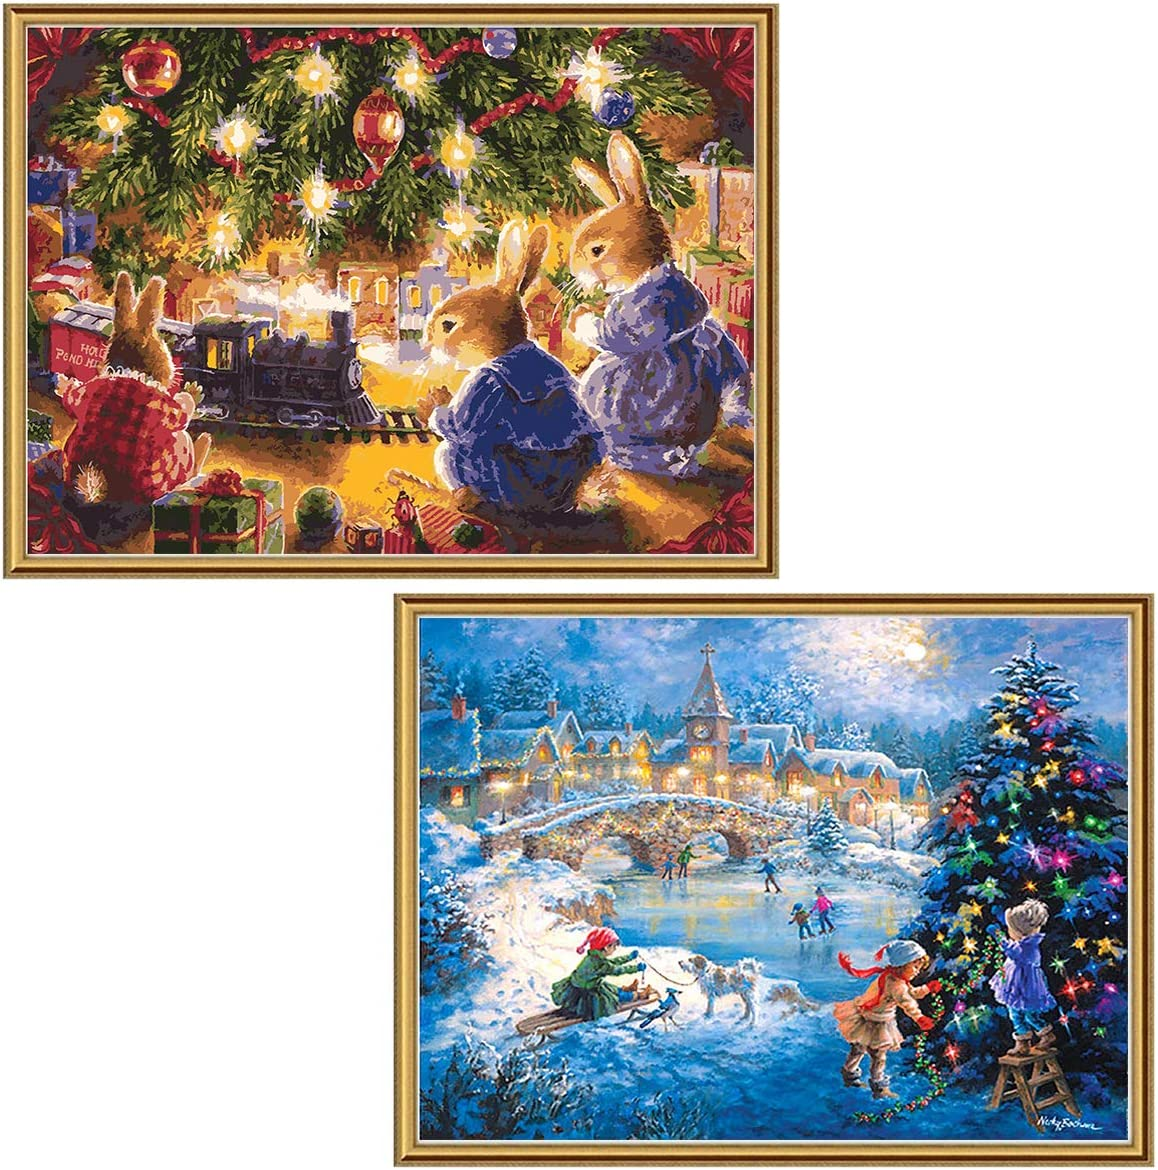 """Ginfonr 2 Pack 5D Diamond Painting Christmas House and Country Full Drill Paint with Diamonds Art, DIY Rabbit and Children Rhinestone by Number Kits Cross Stitch Wall Decor 12""""x16"""""""